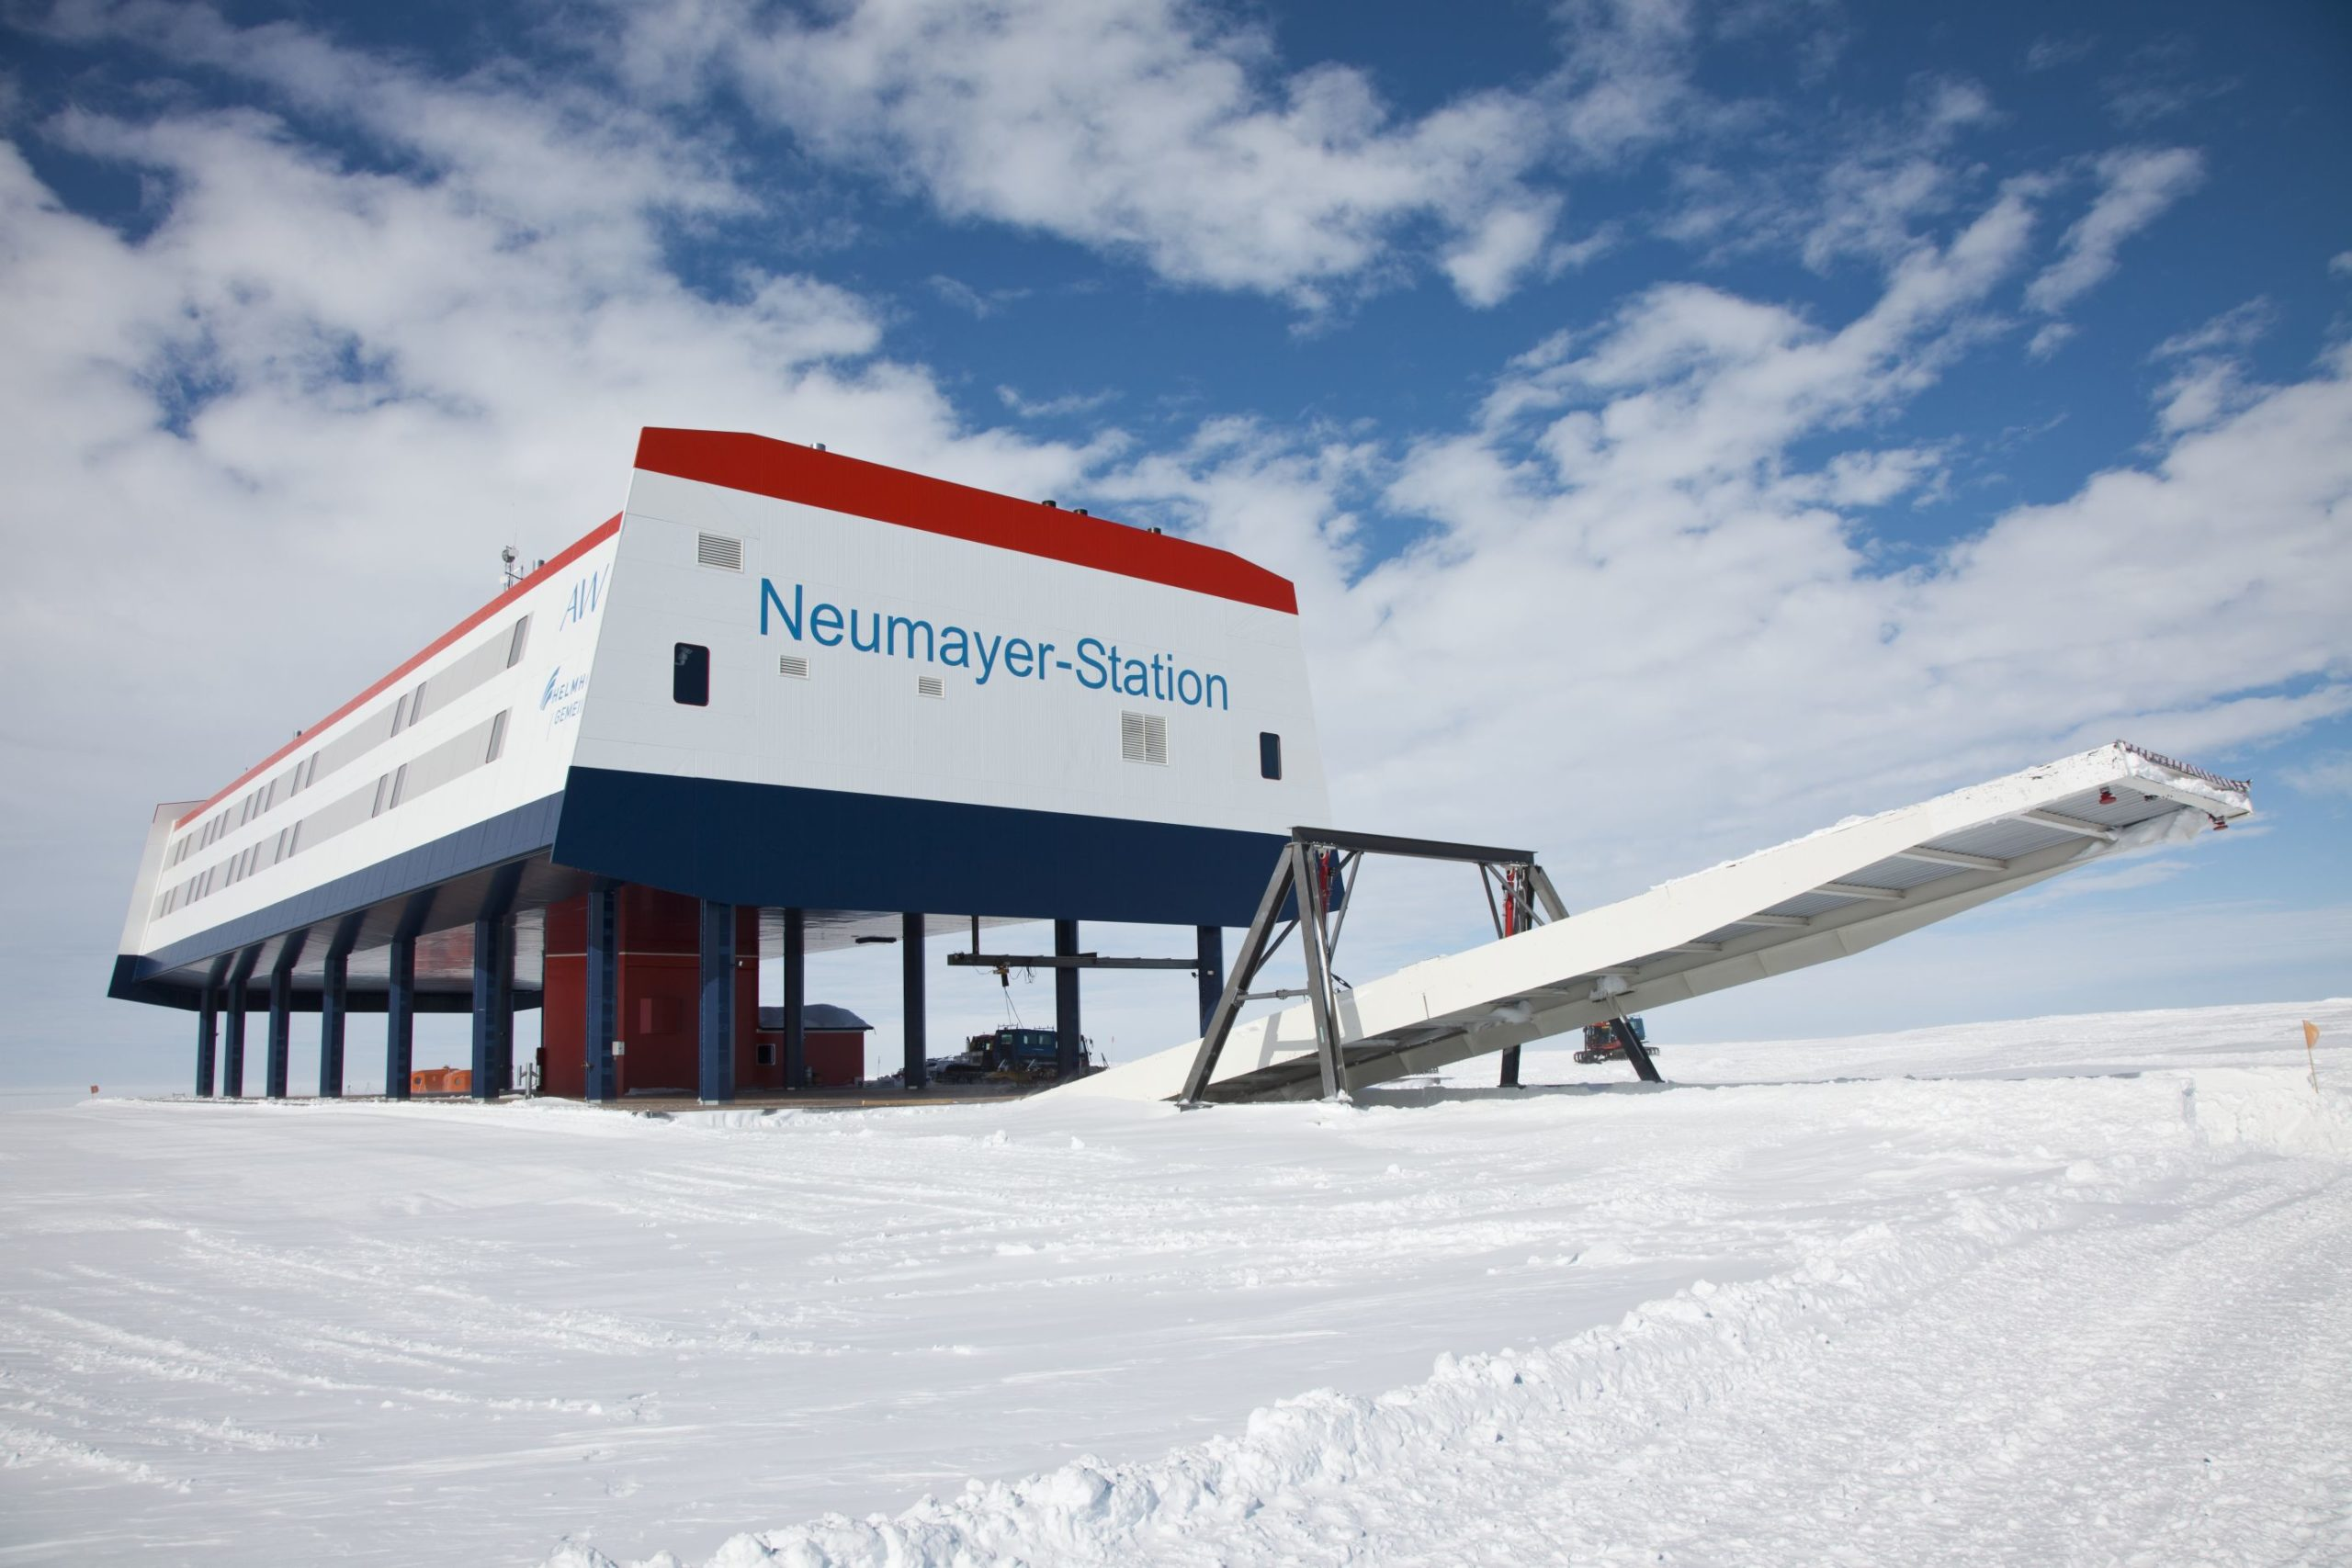 Die deutsche Forschungsstation Neumayer-Station III in der Antarktis. The german polar research centre Neumayer-Station III in the Antarctica